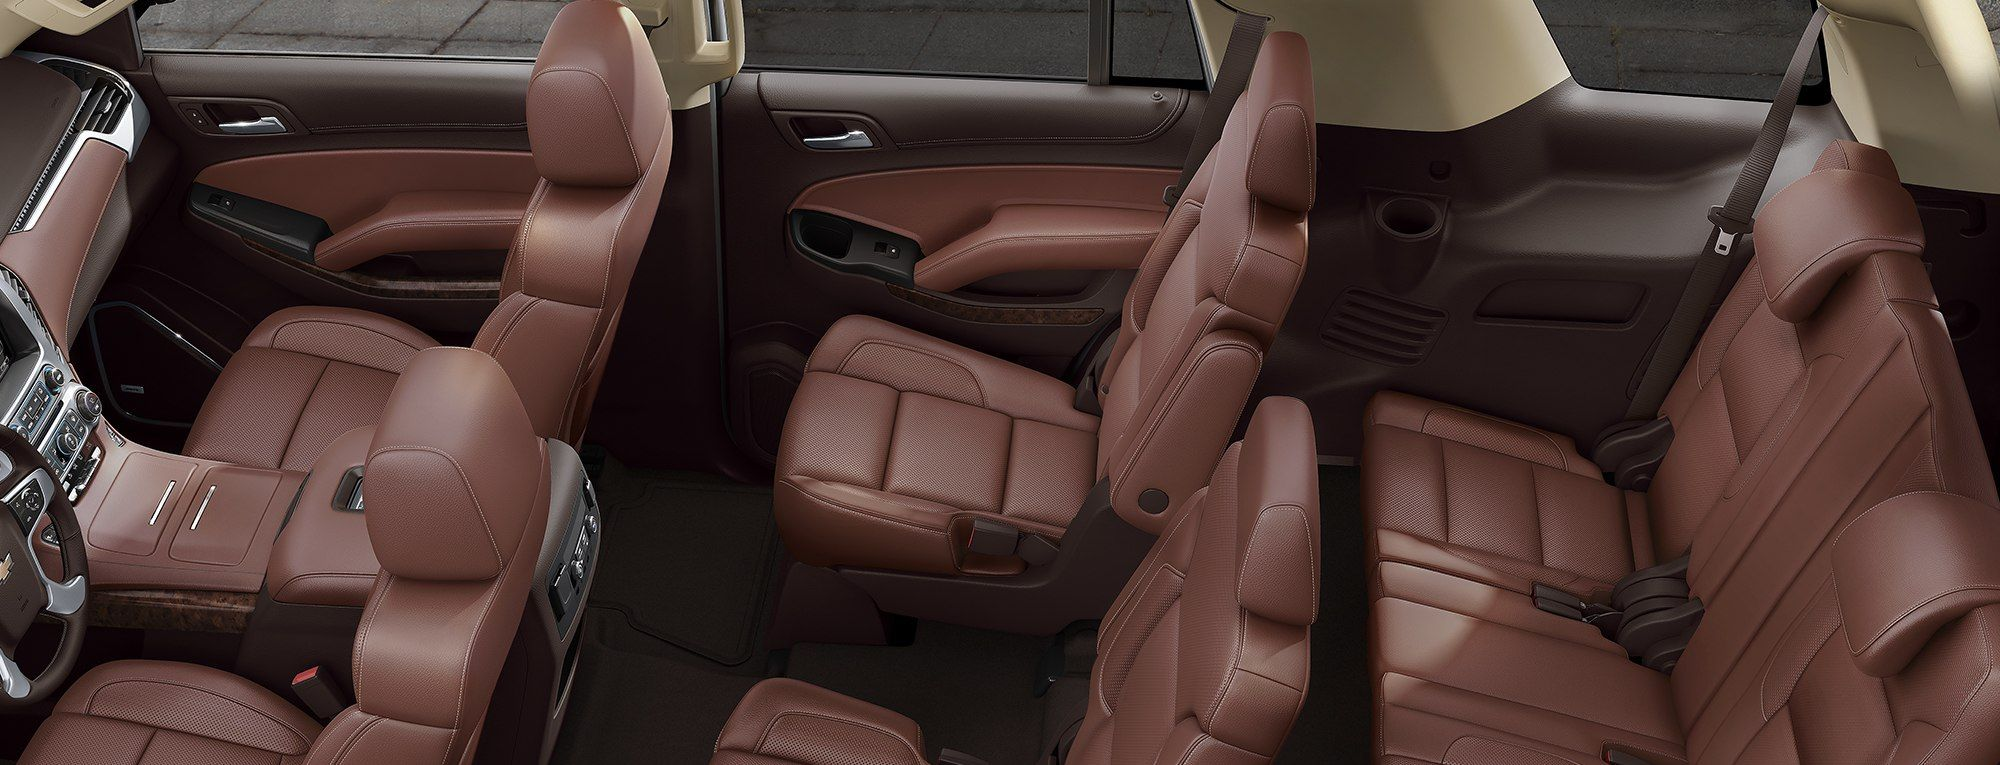 You'll Love All the Space in the 2019 Tahoe!